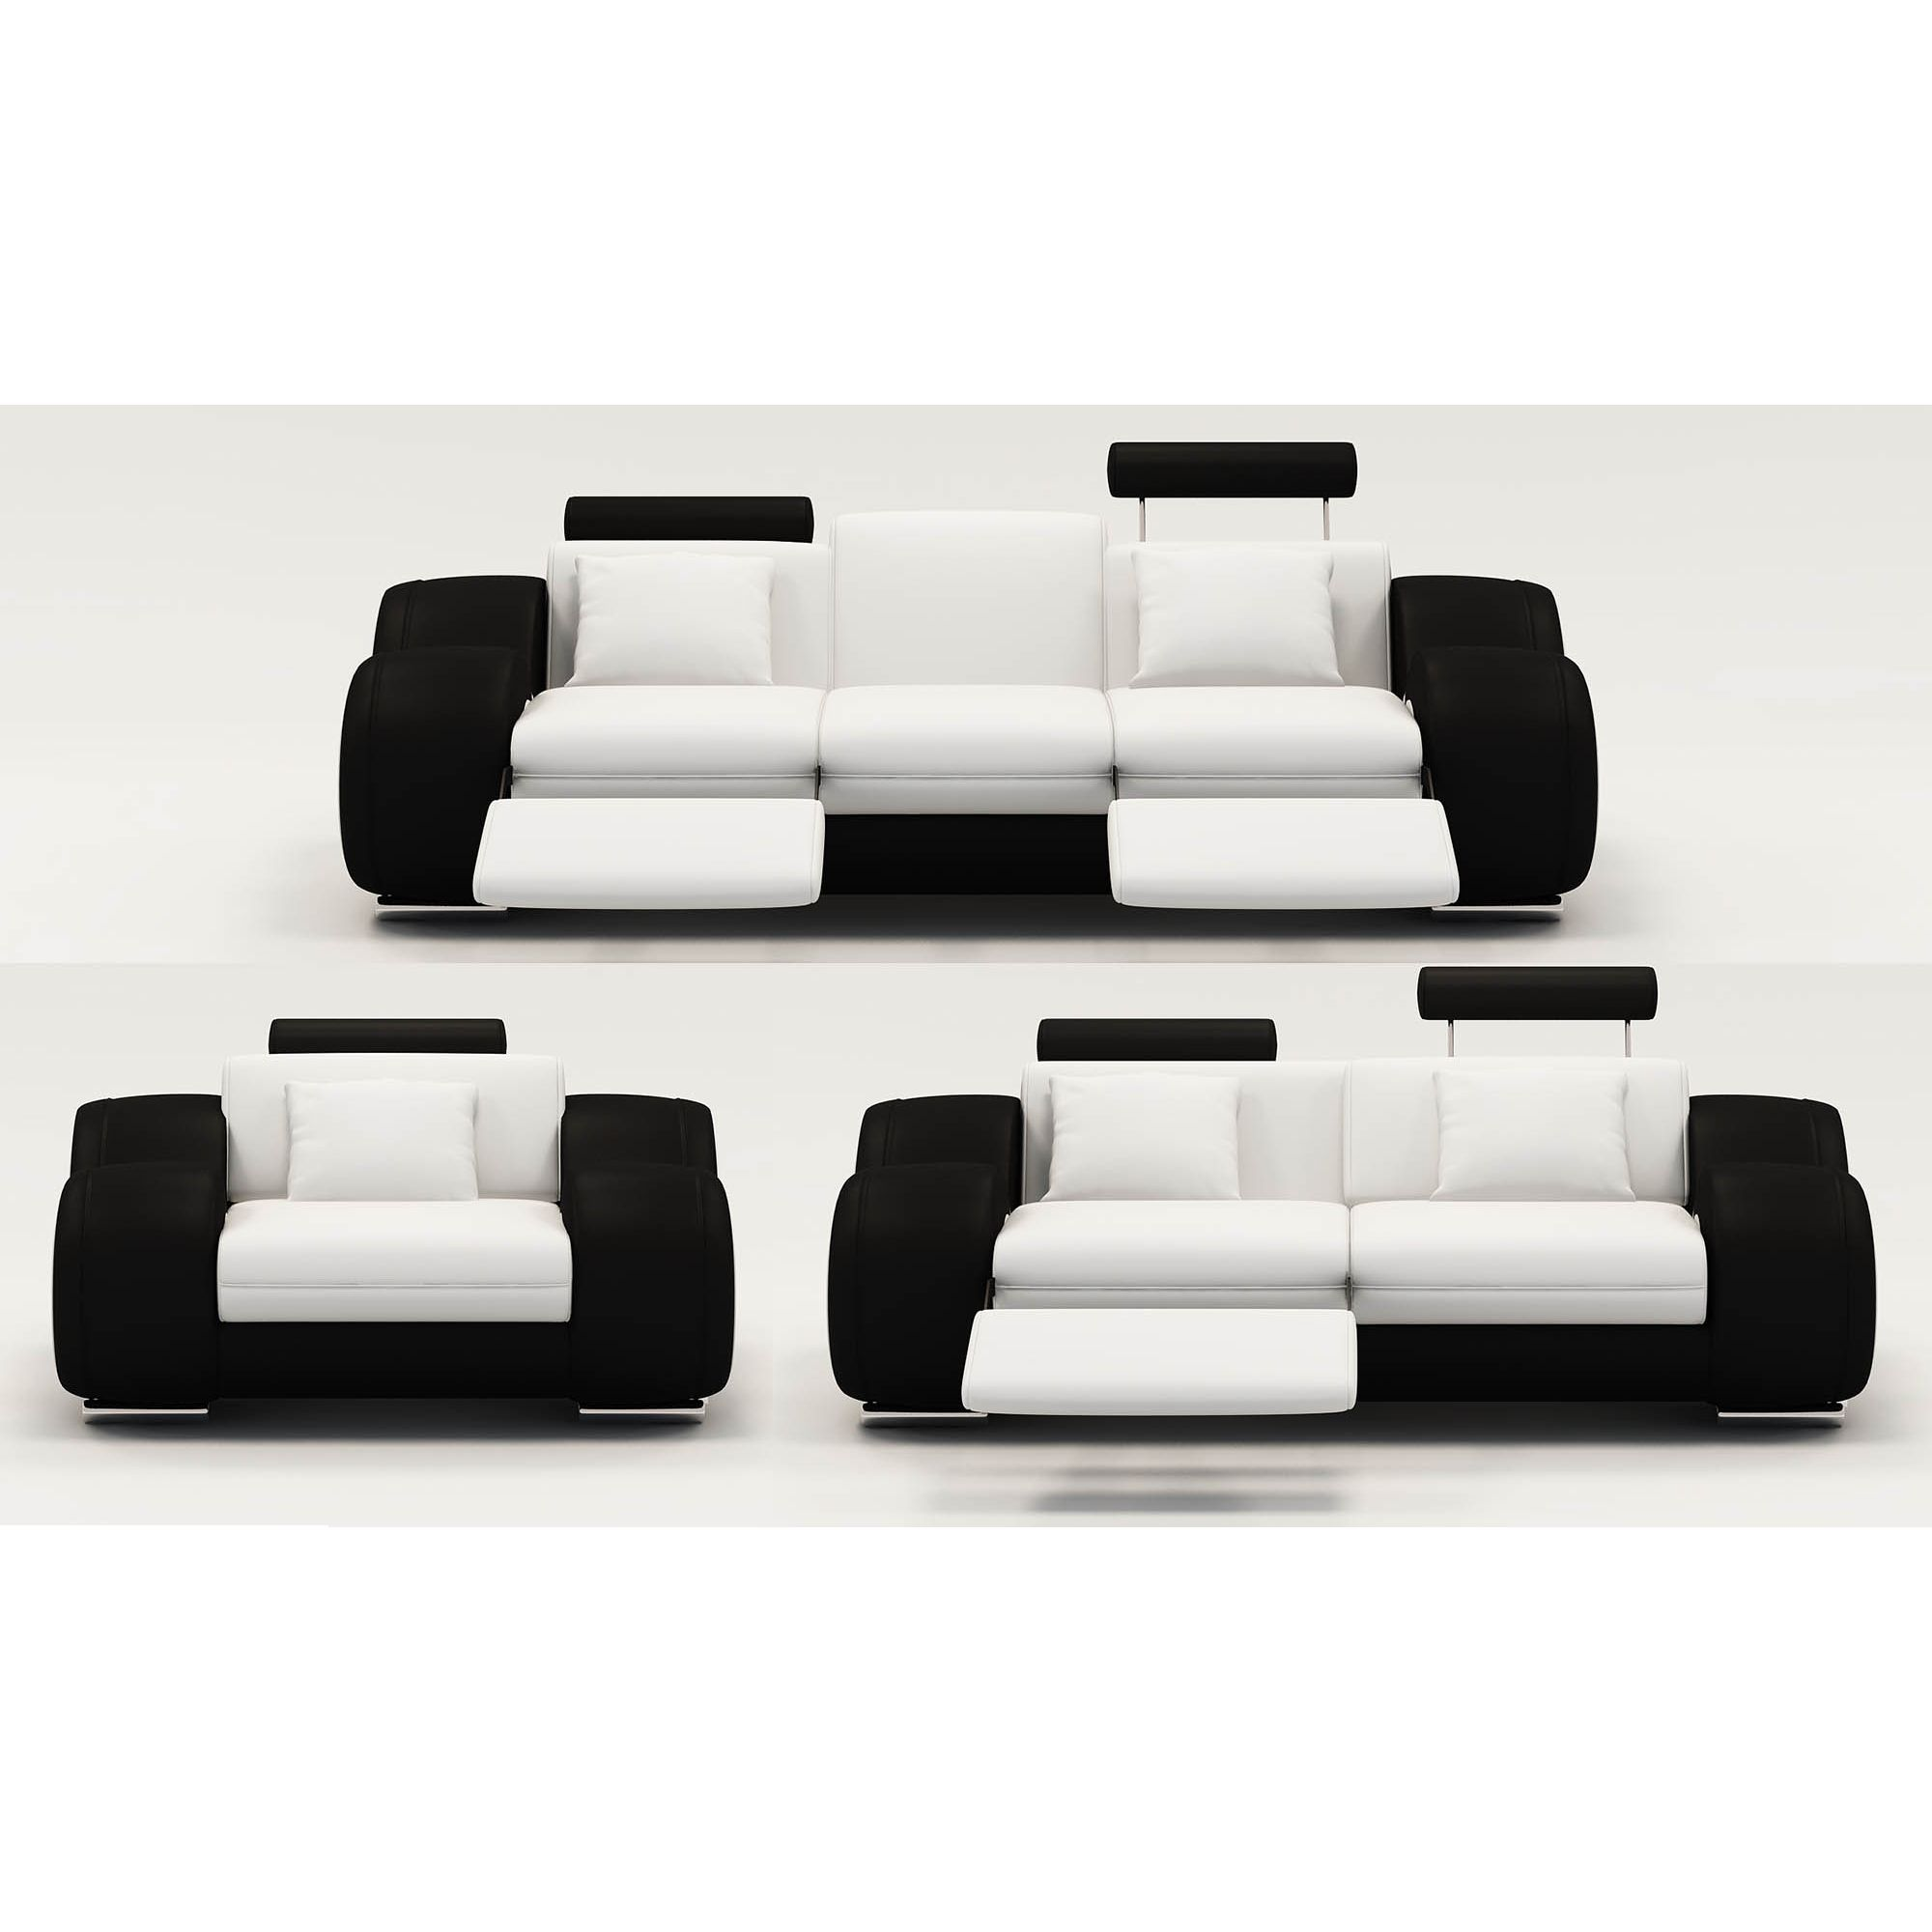 Deco in paris ensemble canape relax design 3 2 places for Canape 2 places design